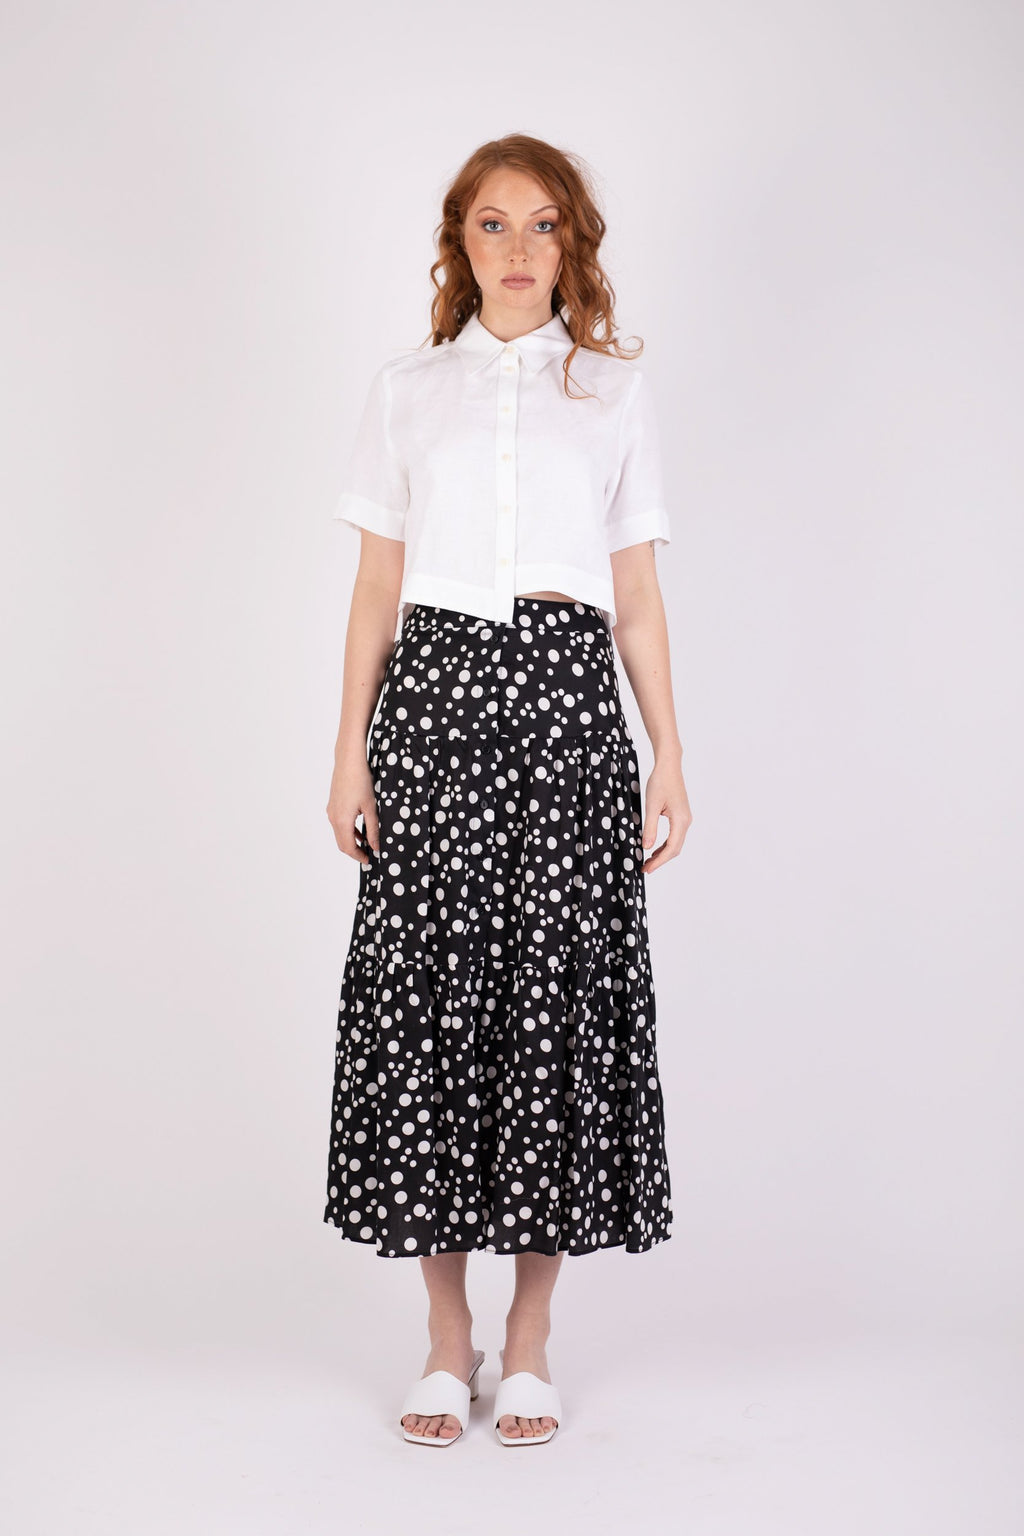 Valencia Skirt Black Random Dot